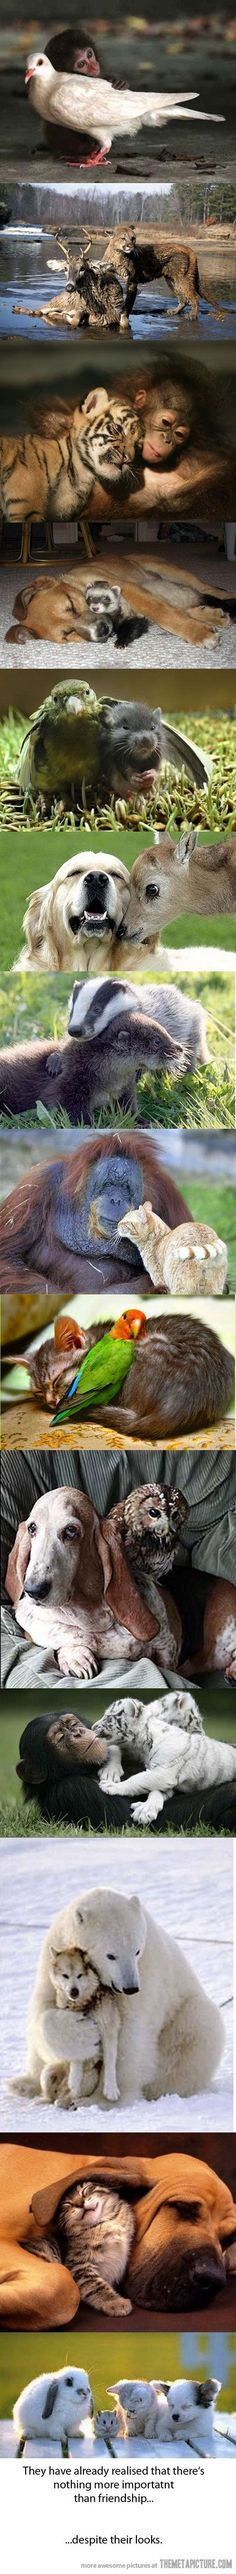 If animals can grow and learn with another, despite differences in appearance, then why can't humans do it?